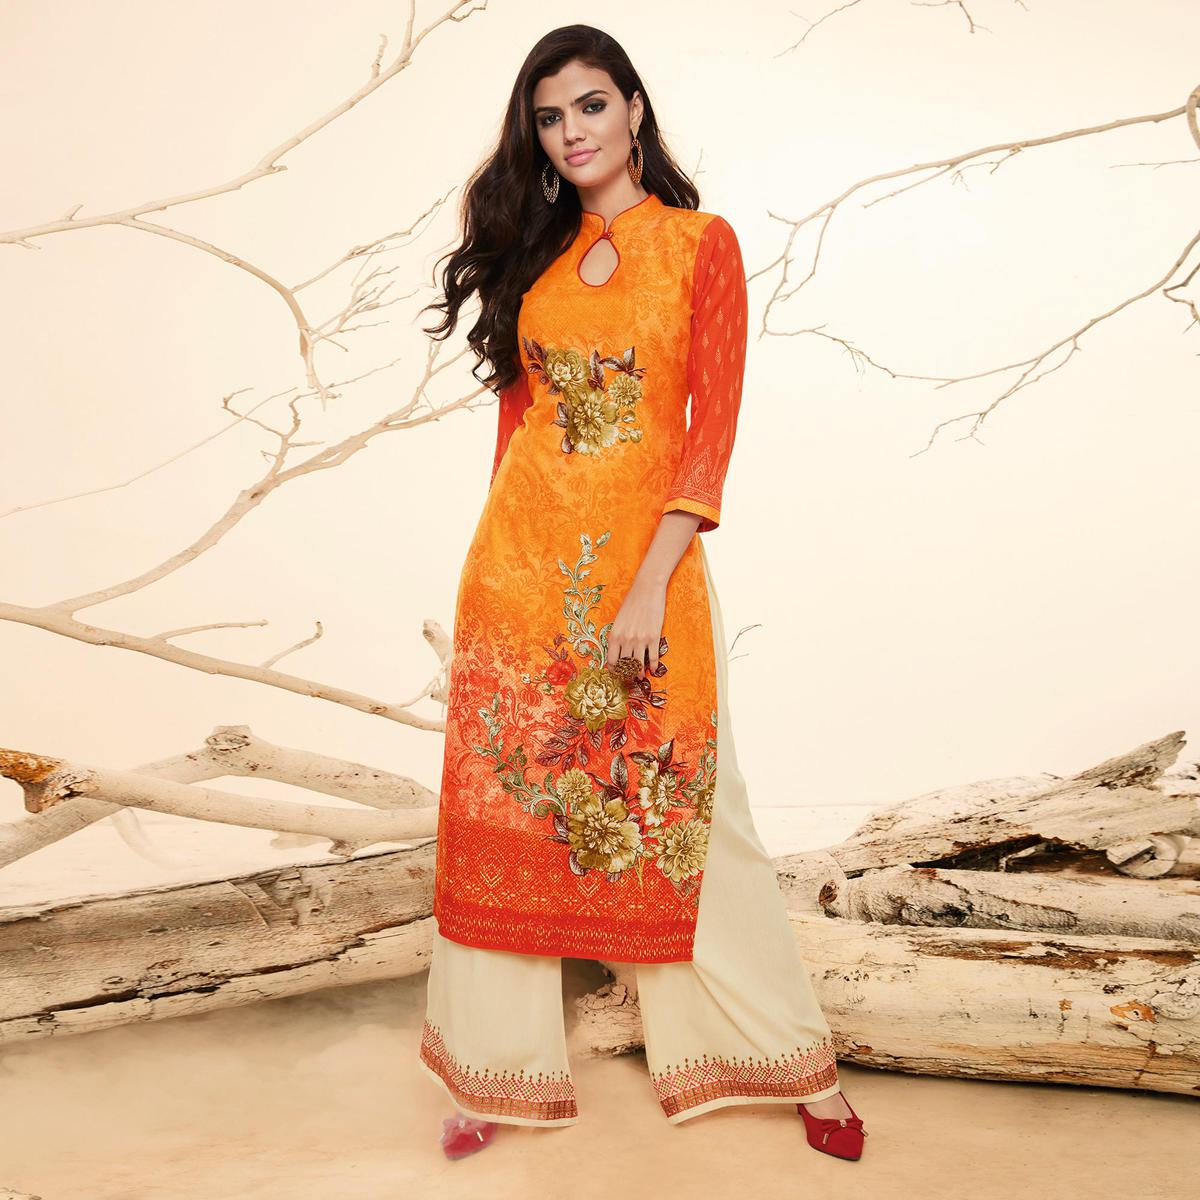 Blooming Orange Colored Casual Wear Rayon Kurti-Palazzo Suit.